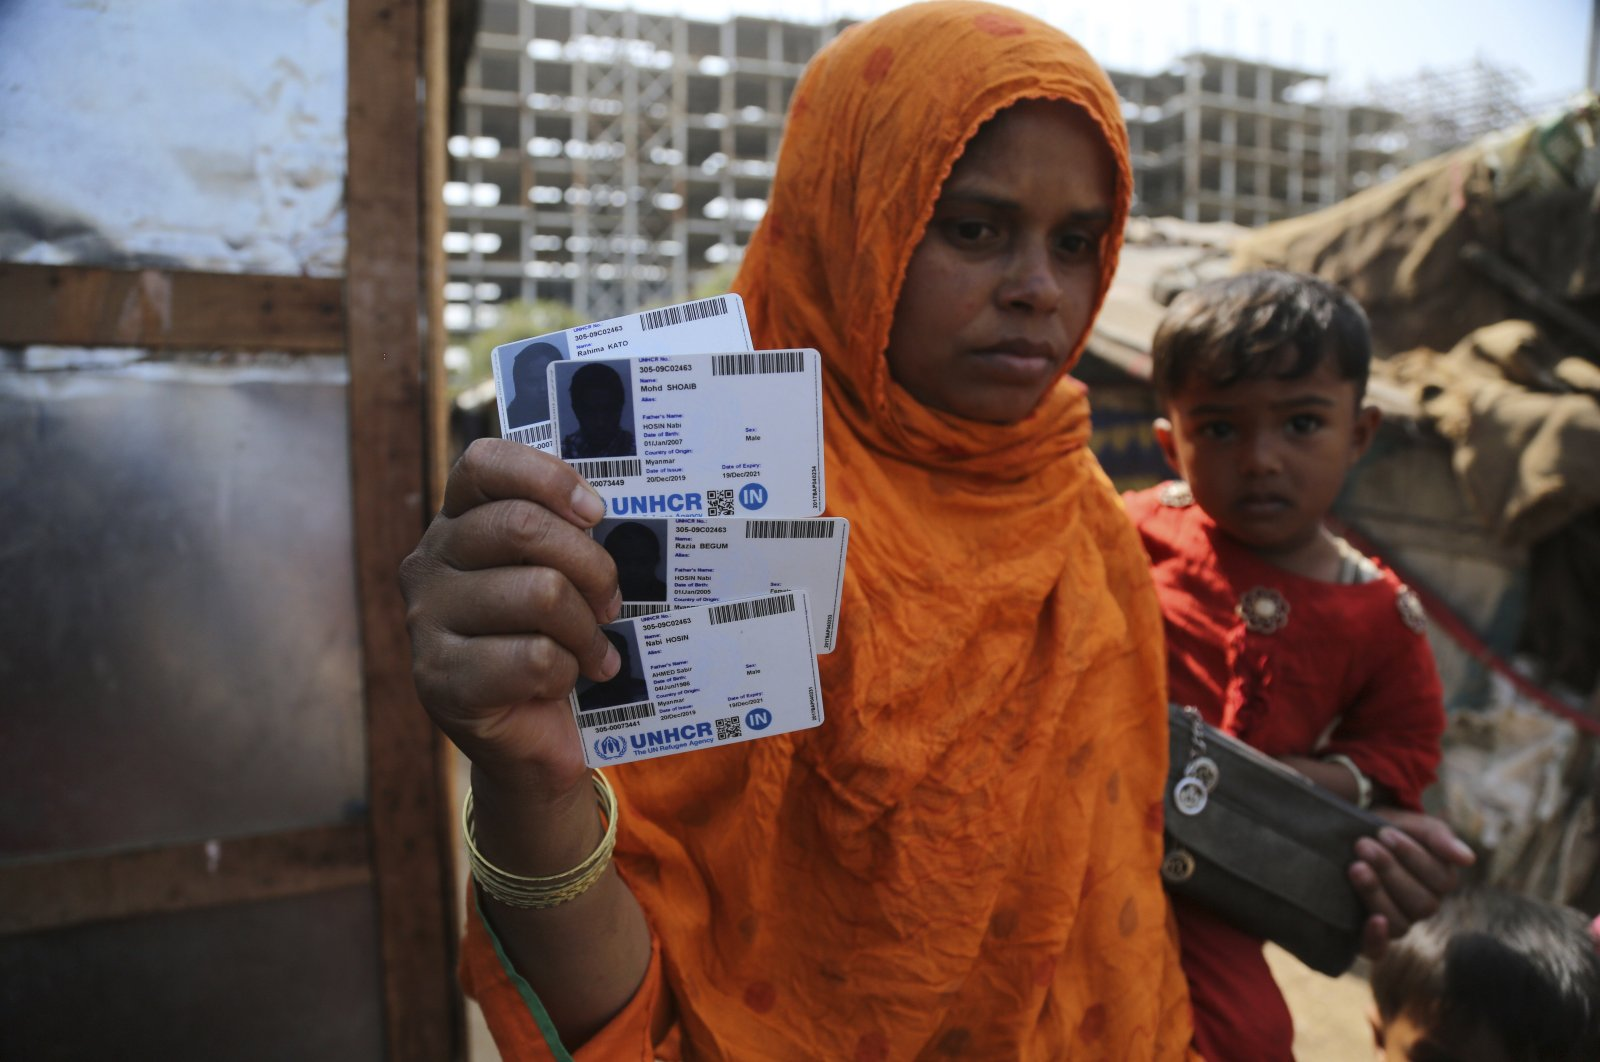 Rahima kato, a Rohingya woman displays identity cards of her family members issued by United Nations High Commissioner for Refugees (UNHCR) at their makeshift camp on the outskirts of Jammu, India, March 9,2021. (AP Photo)